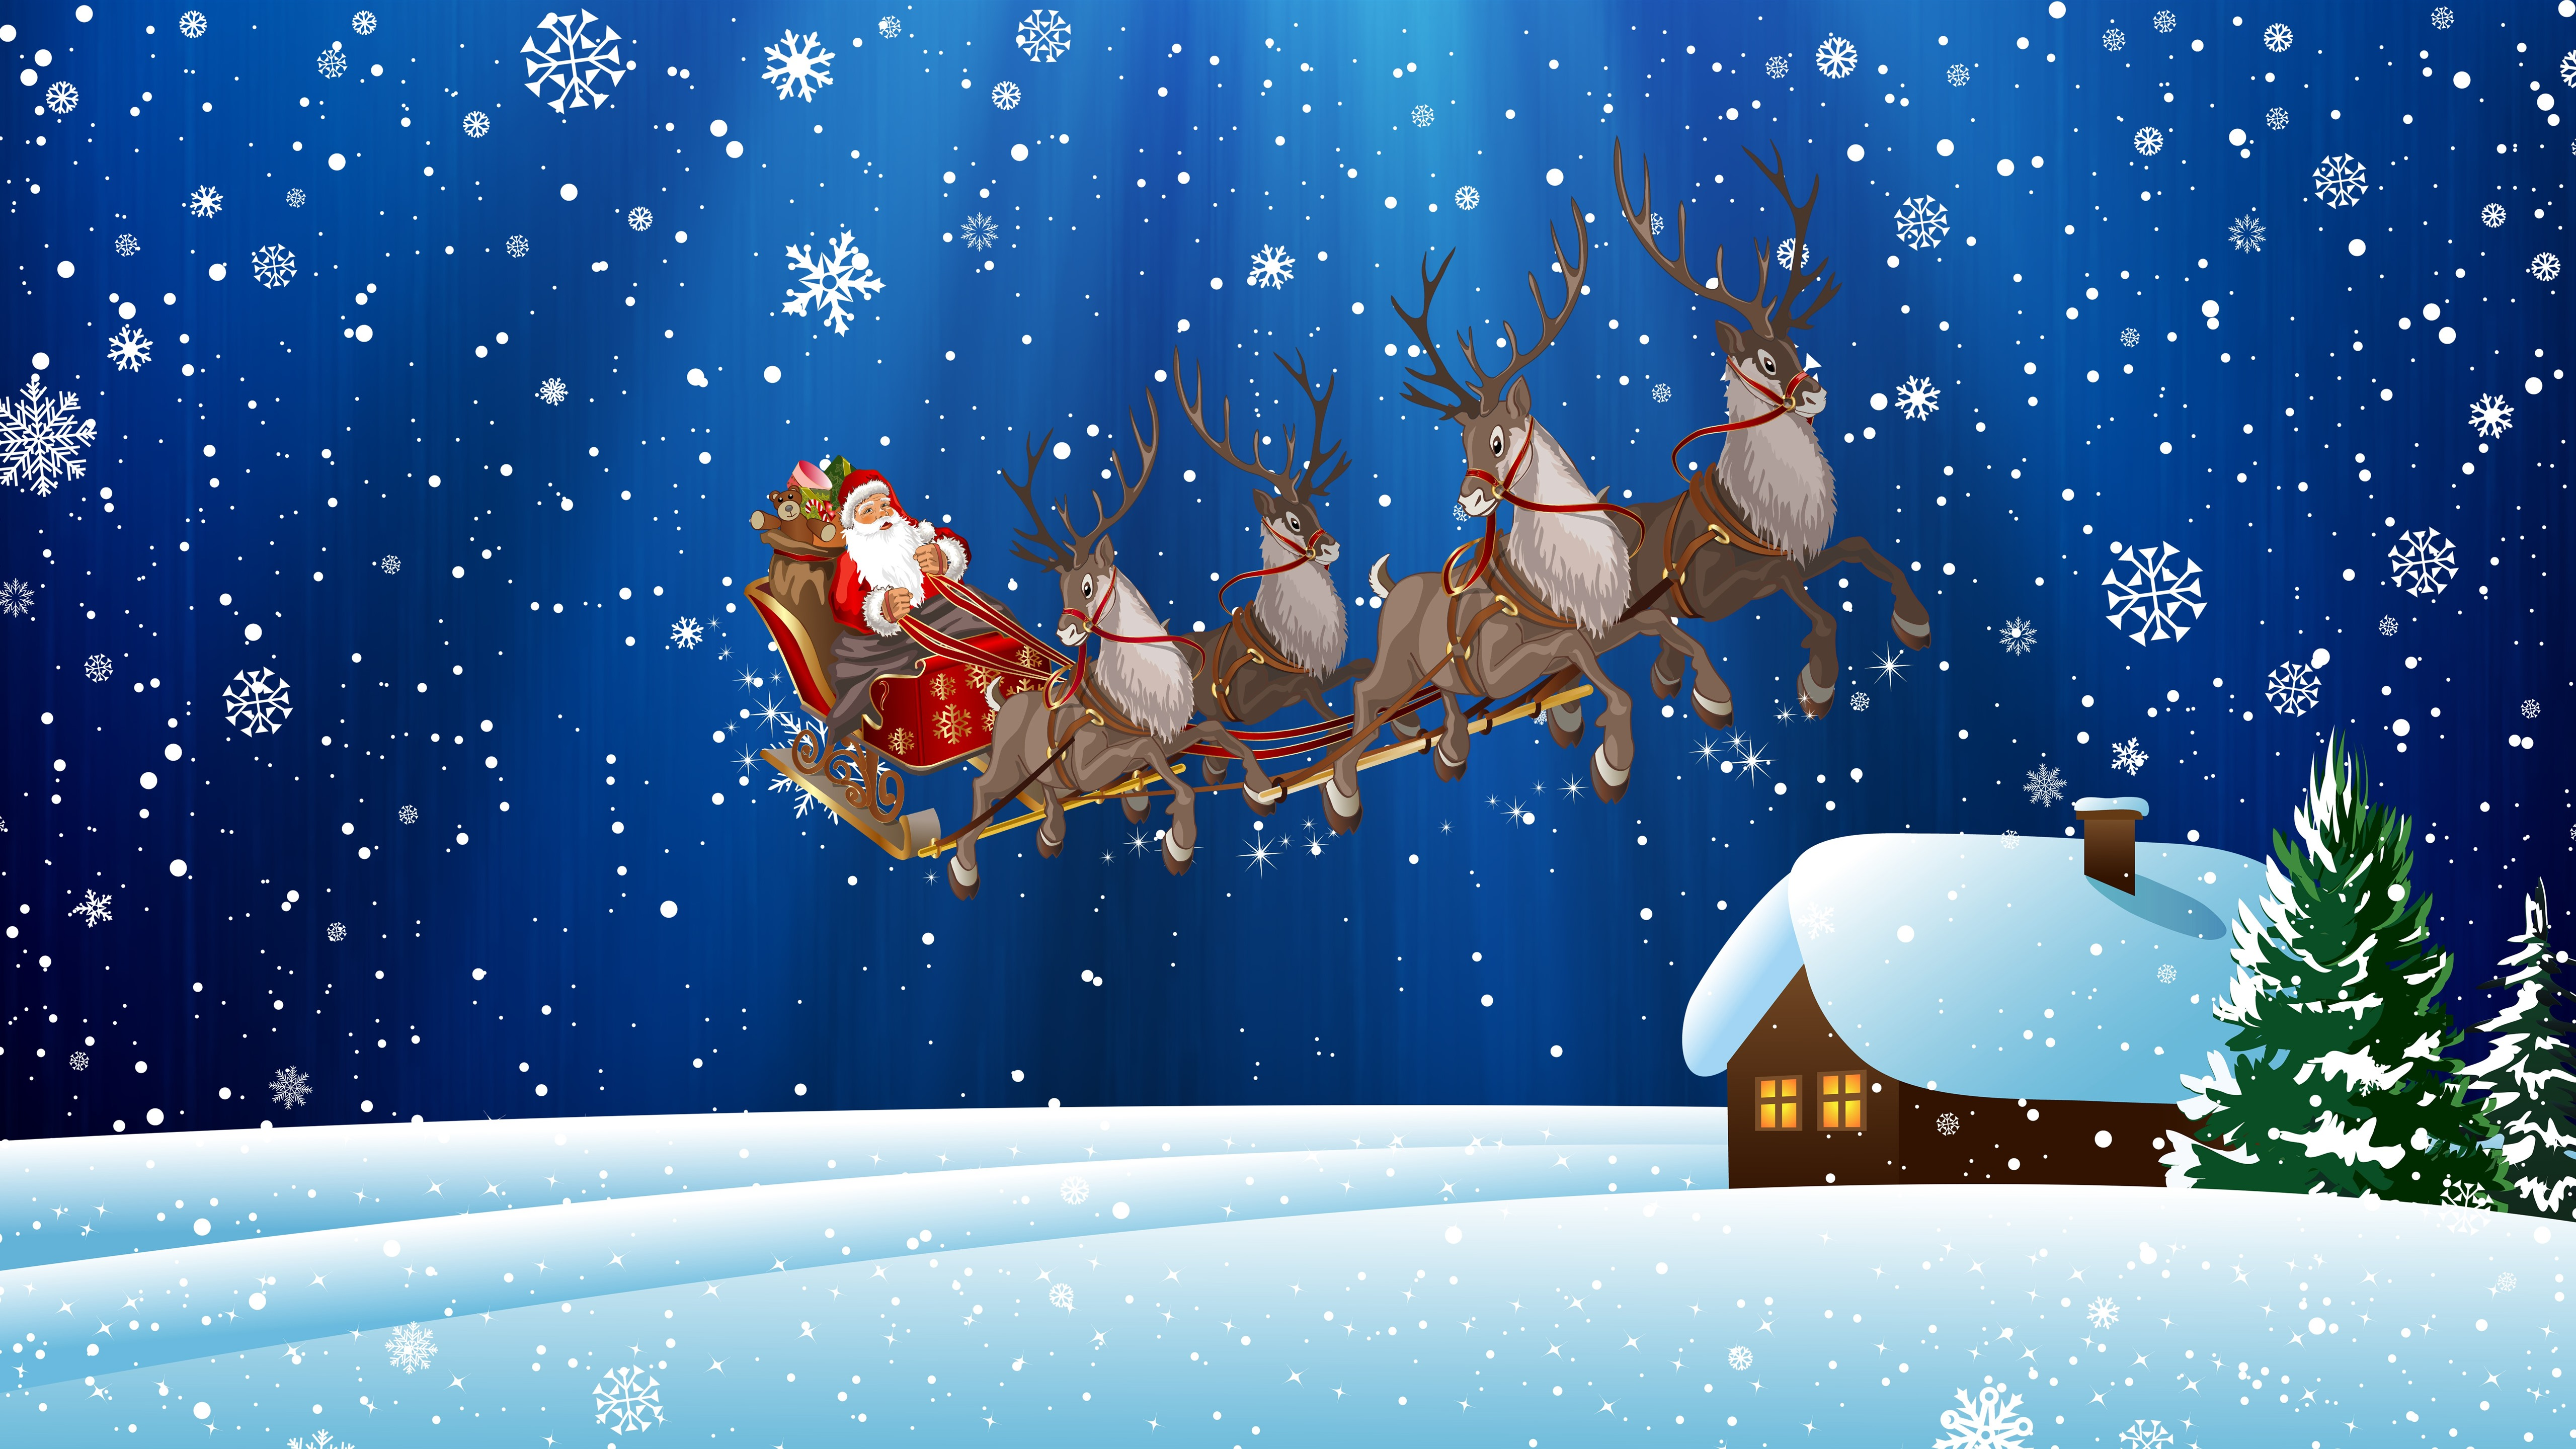 Wallpaper Christmas Santa Claus Snowflakes Snow Deer